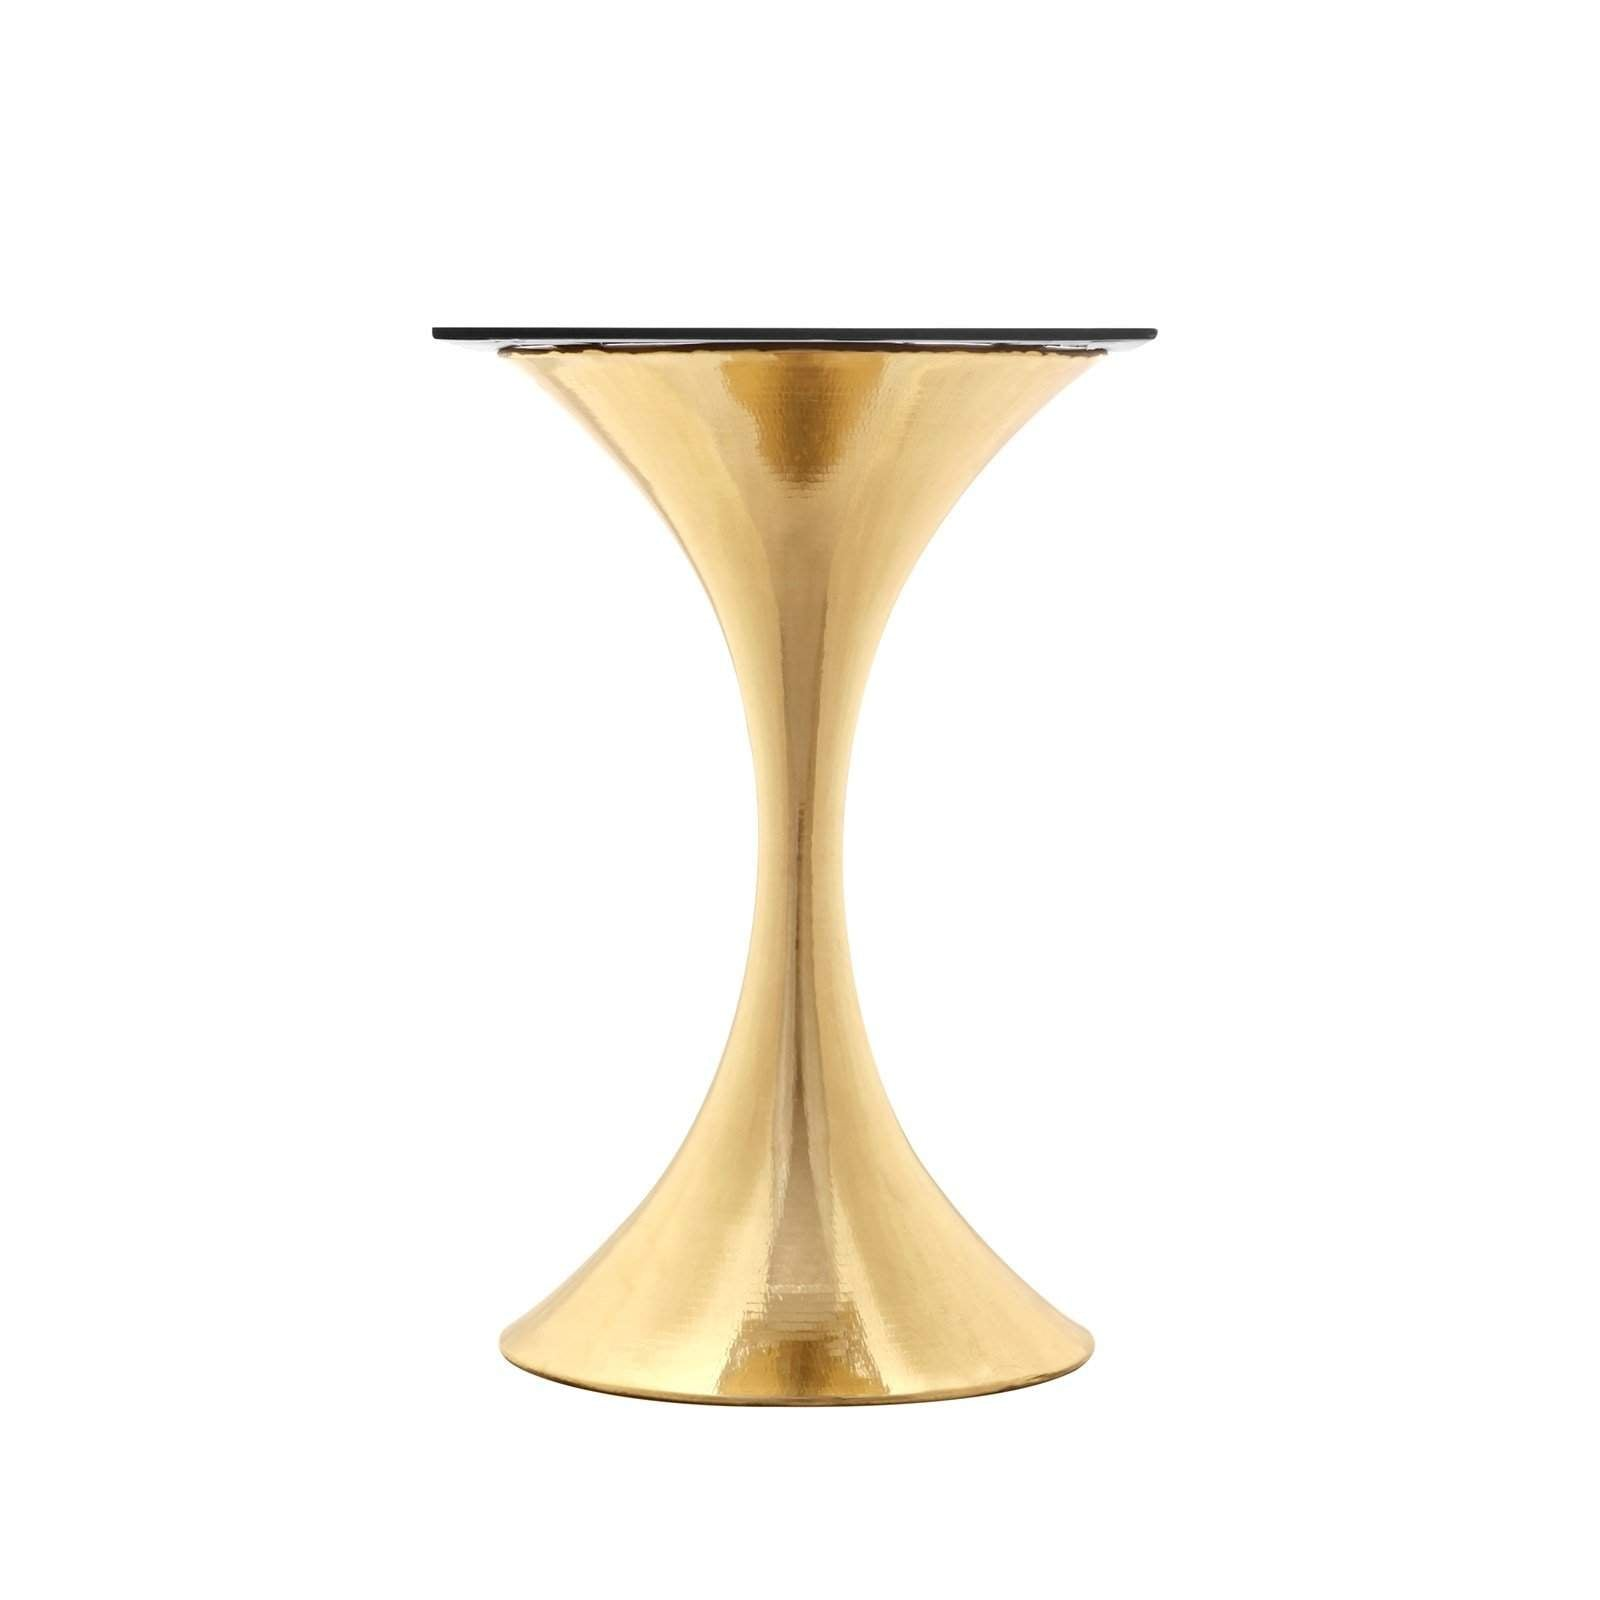 "Bungalow 5 - STOCKHOLM BRASS CENTER DINING TABLE BASE (PAIRS WITH 36"" TOP, SOLD SEPARATELY) in BRASS"